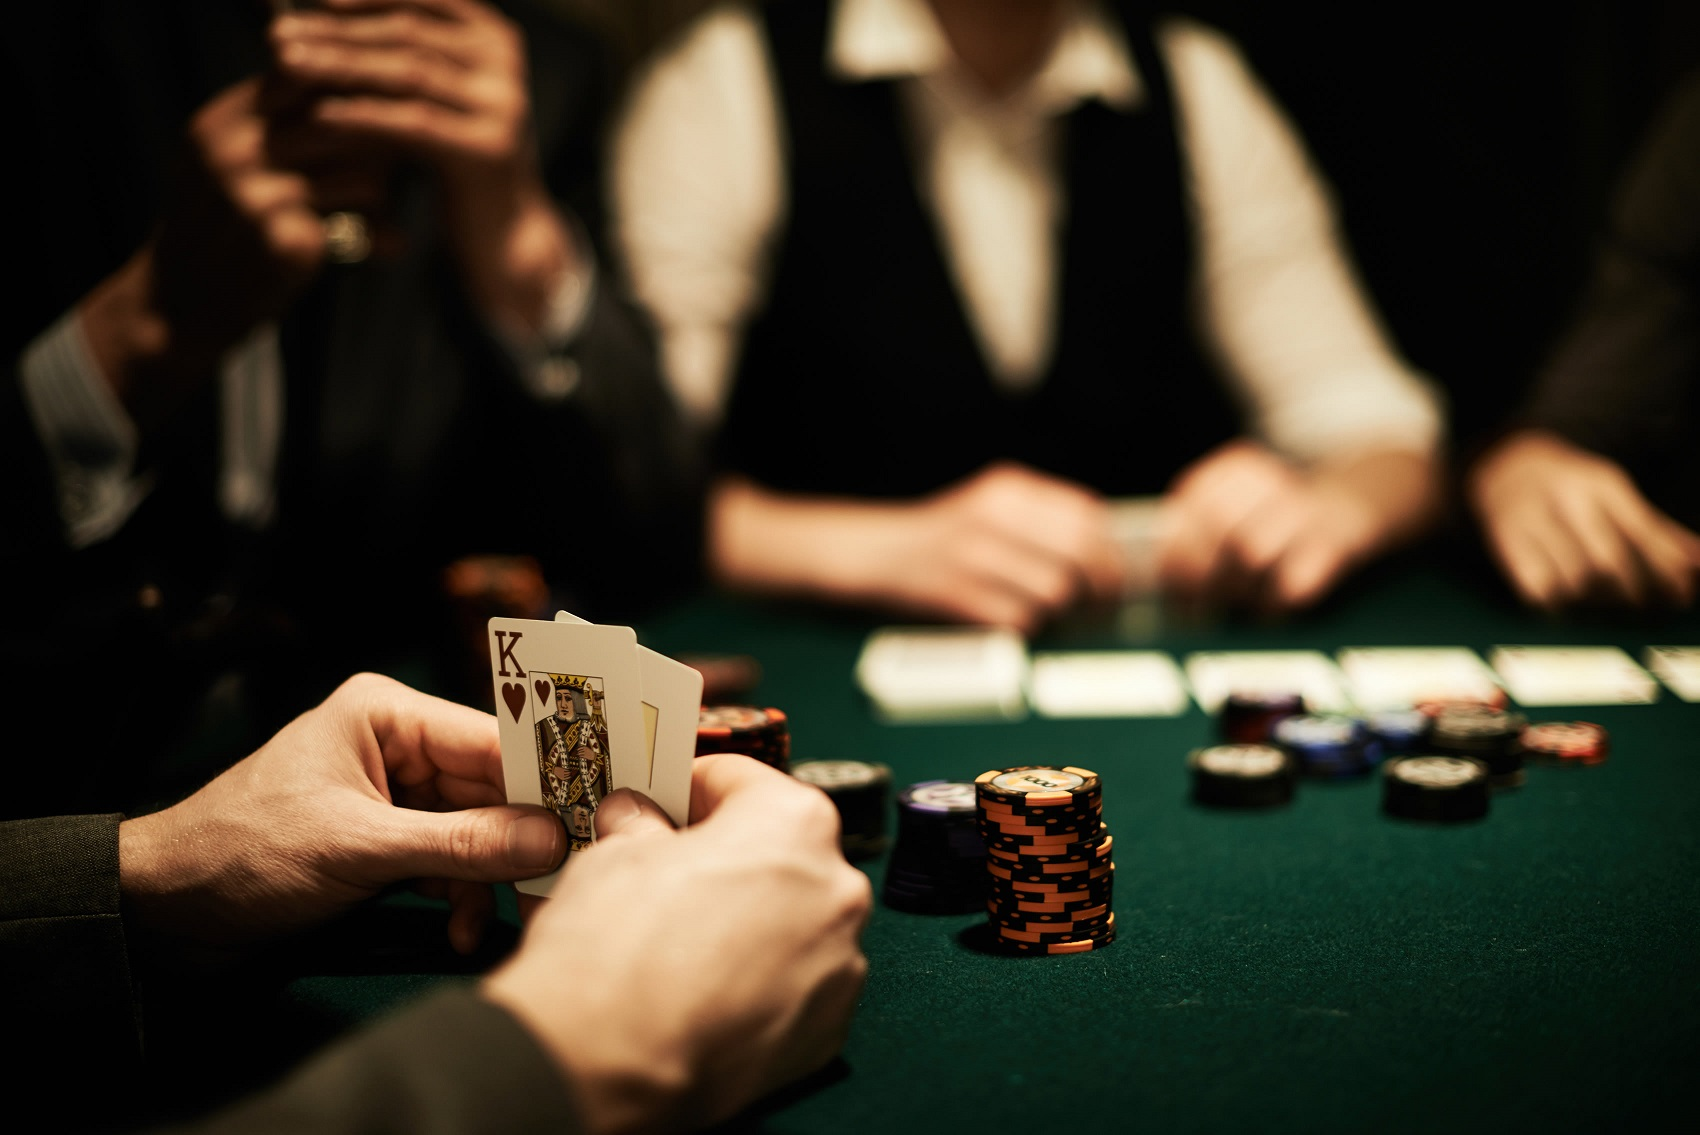 5 Efficient Ways To Get More Out Of Online Casino